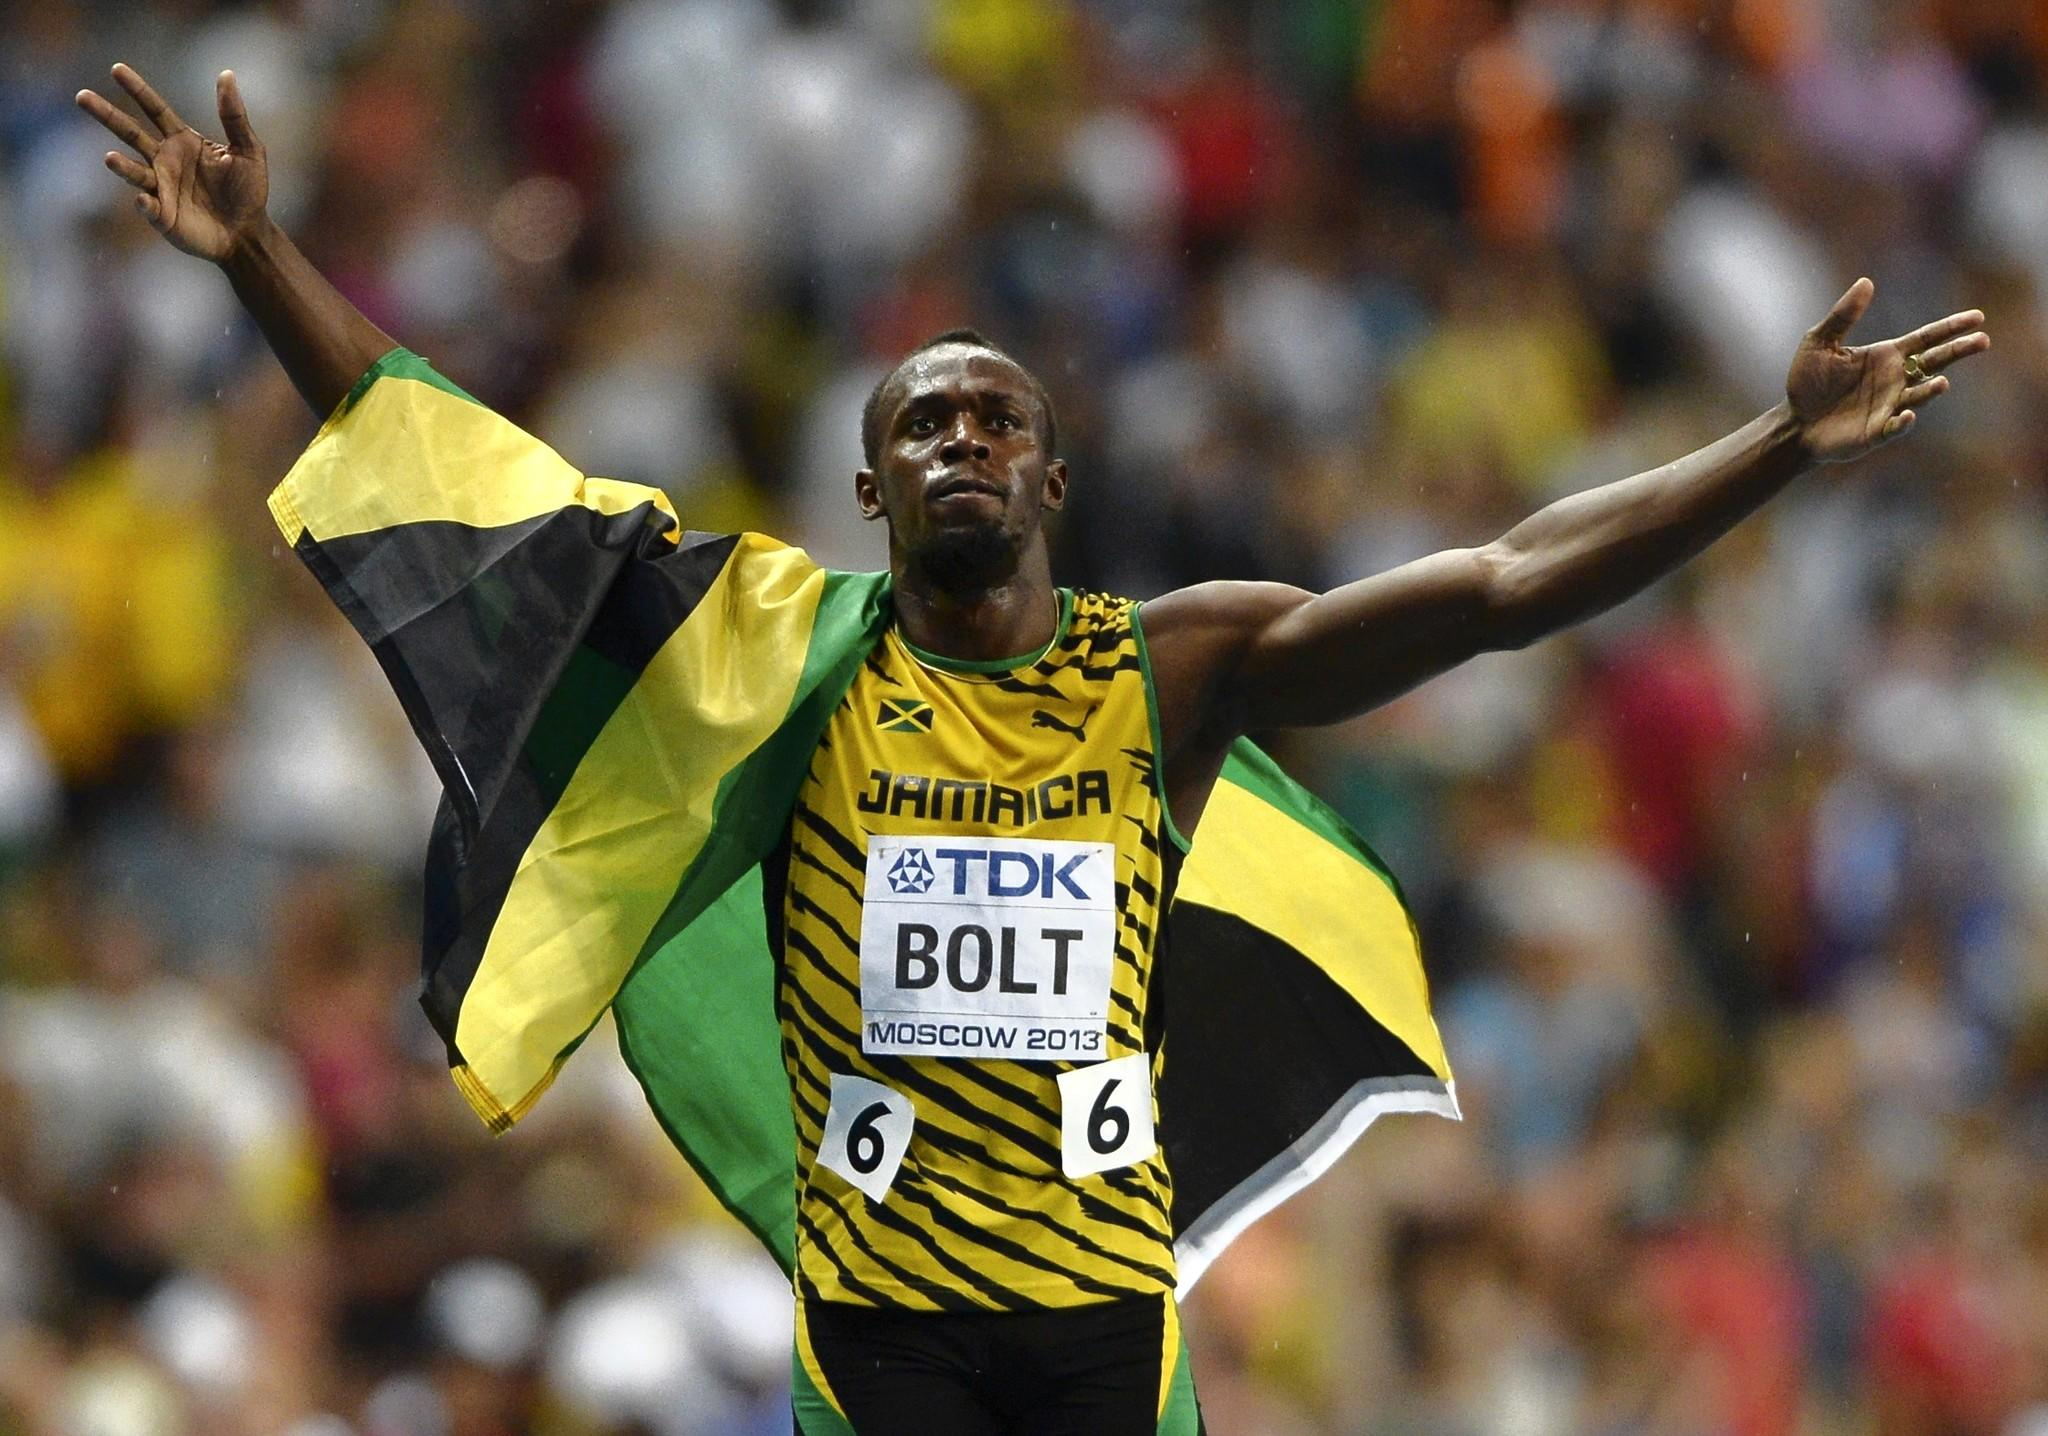 Usain Bolt celebrates winning in the men's 100 metres final during the IAAF World Athletics Championships.